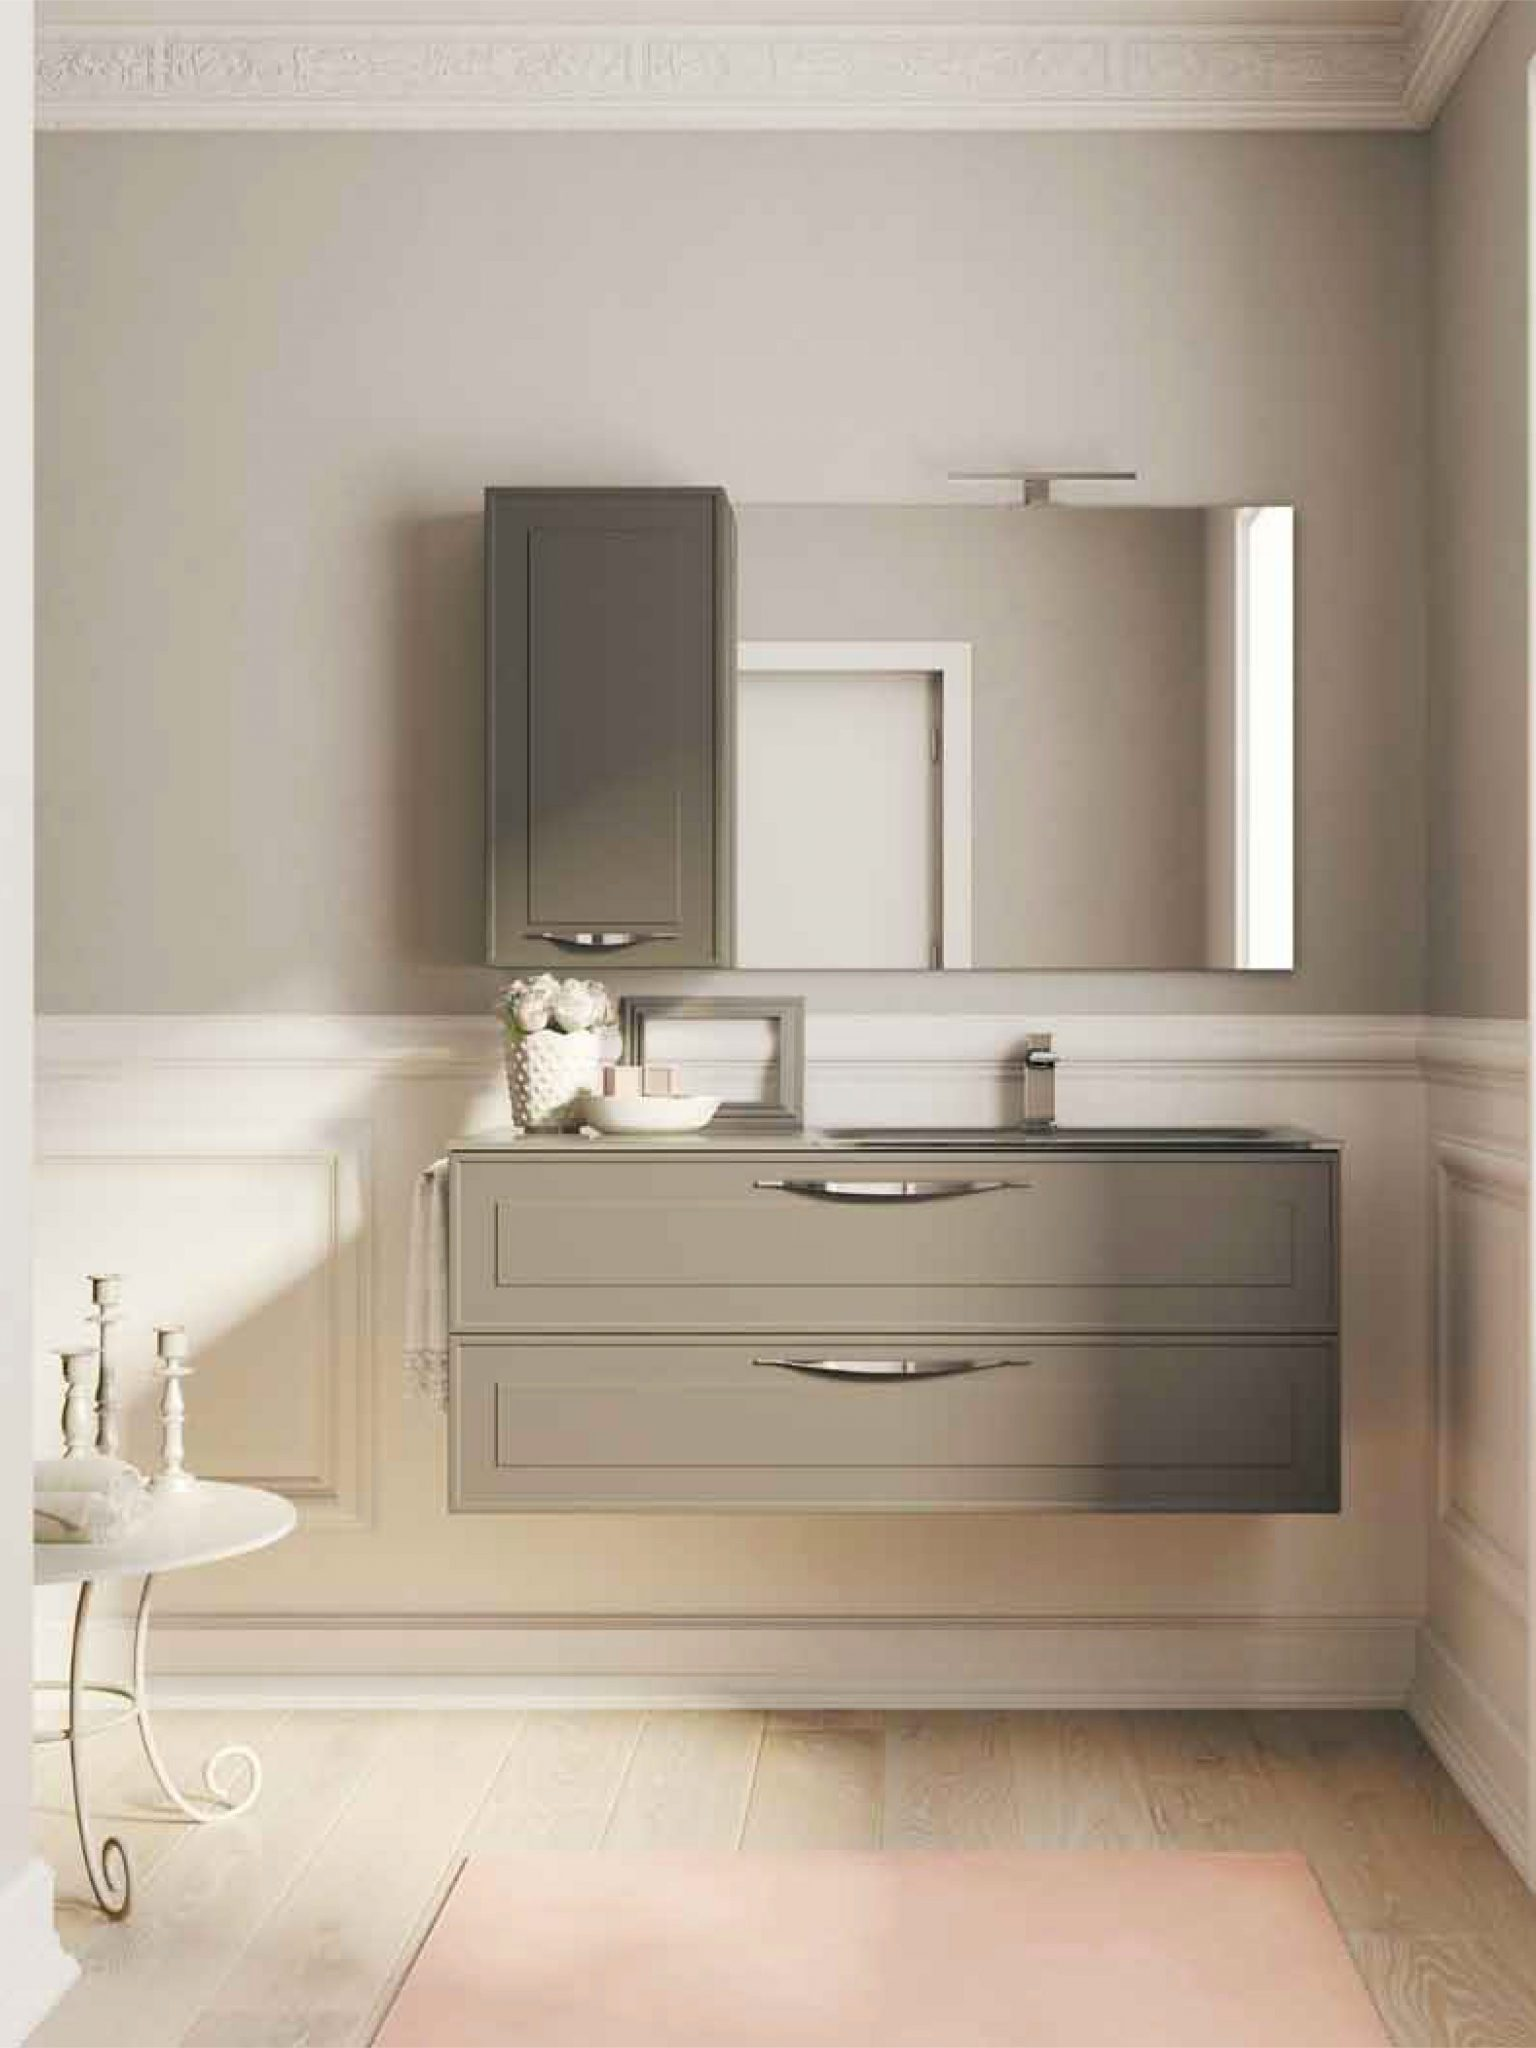 Idee per un bagno shabby chic ideagroup blog for Idee di design di mobili contemporanei